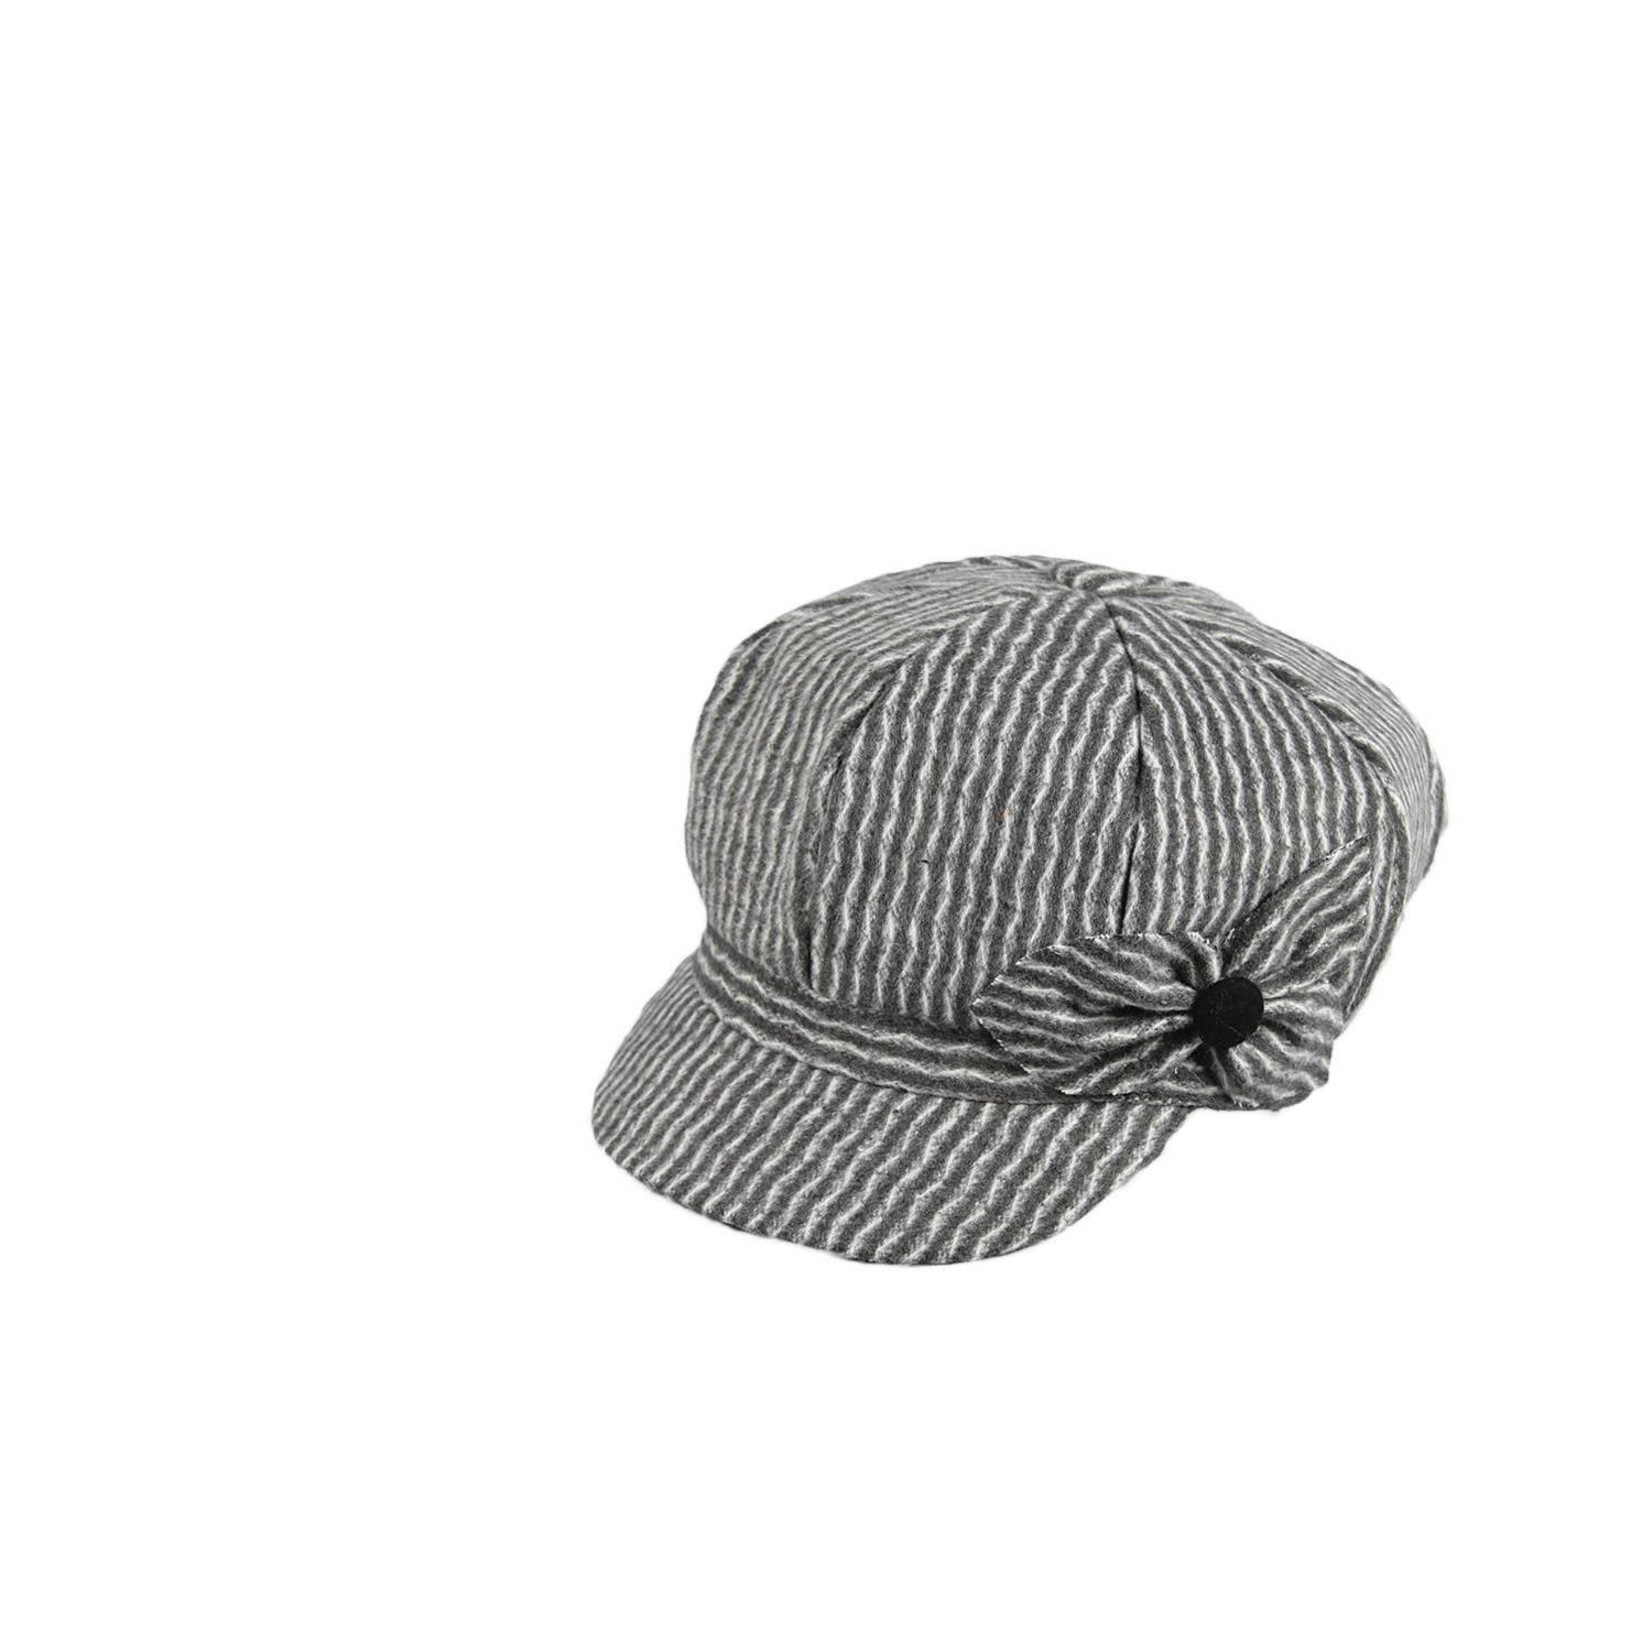 Jeanne Simmons 100% Polyester Engineer's Floppy Cap w/ Bow Detail - Grey and White